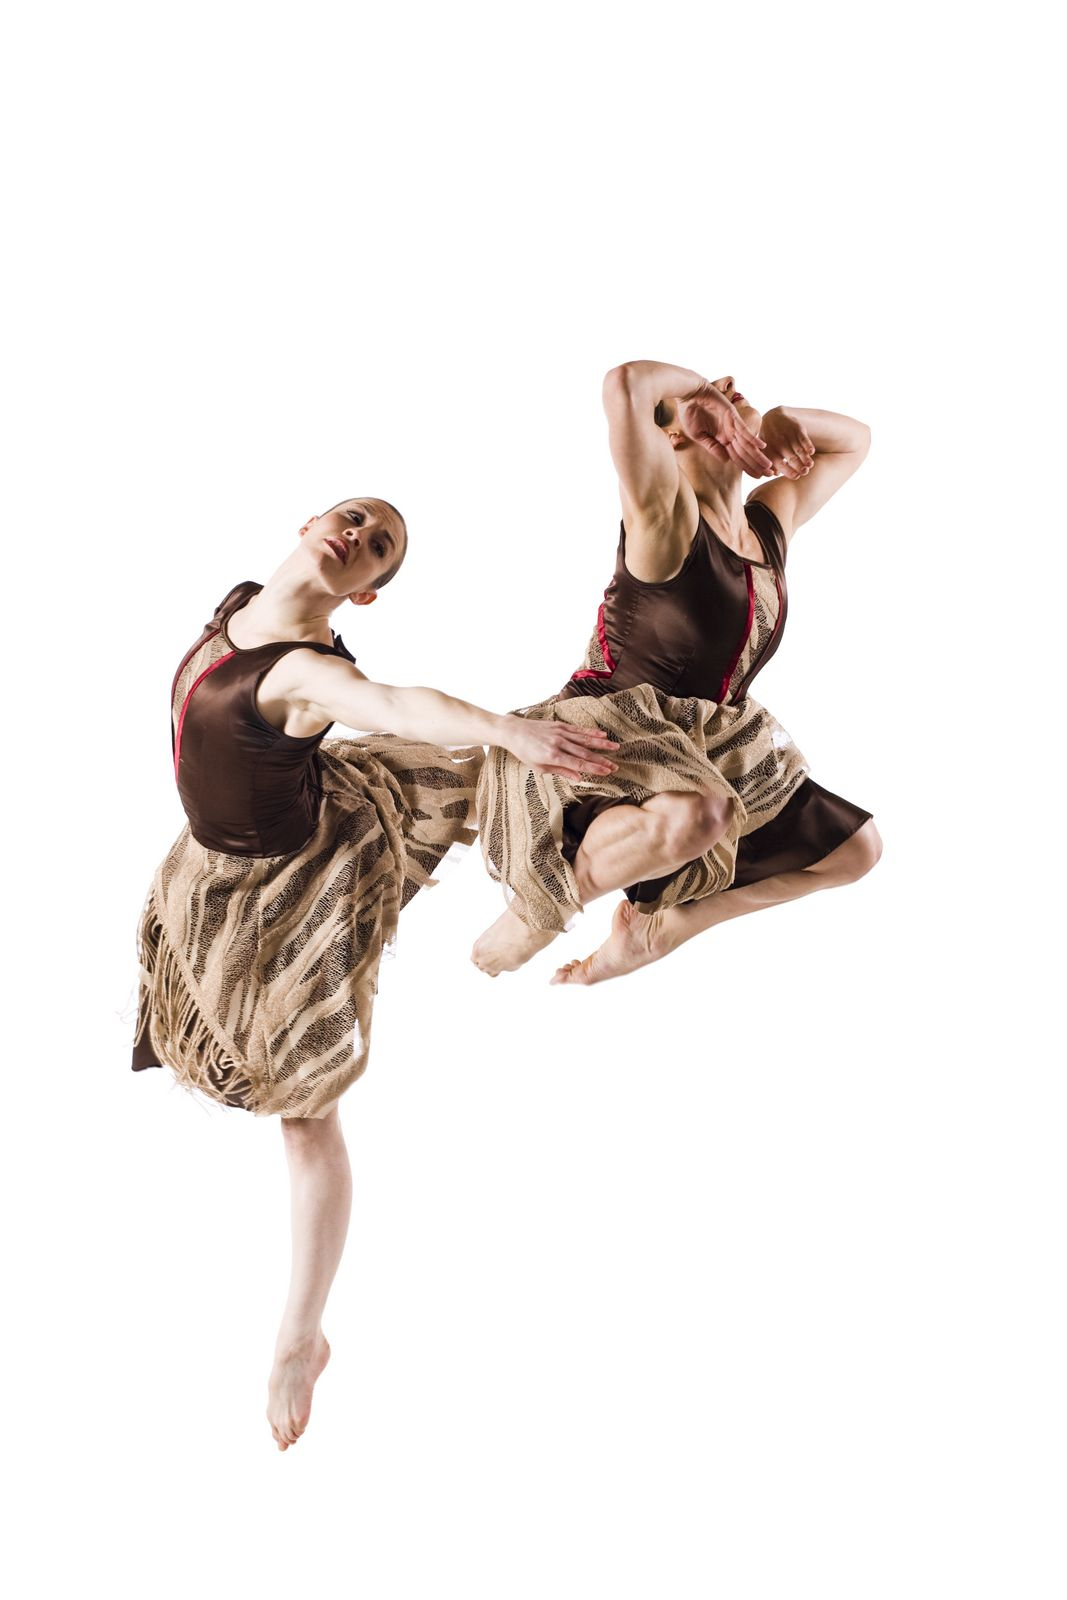 Kirsten Shelton and Vanessa Valecillos in Sugar in the Raw.  Photo by Cheryl Mann.